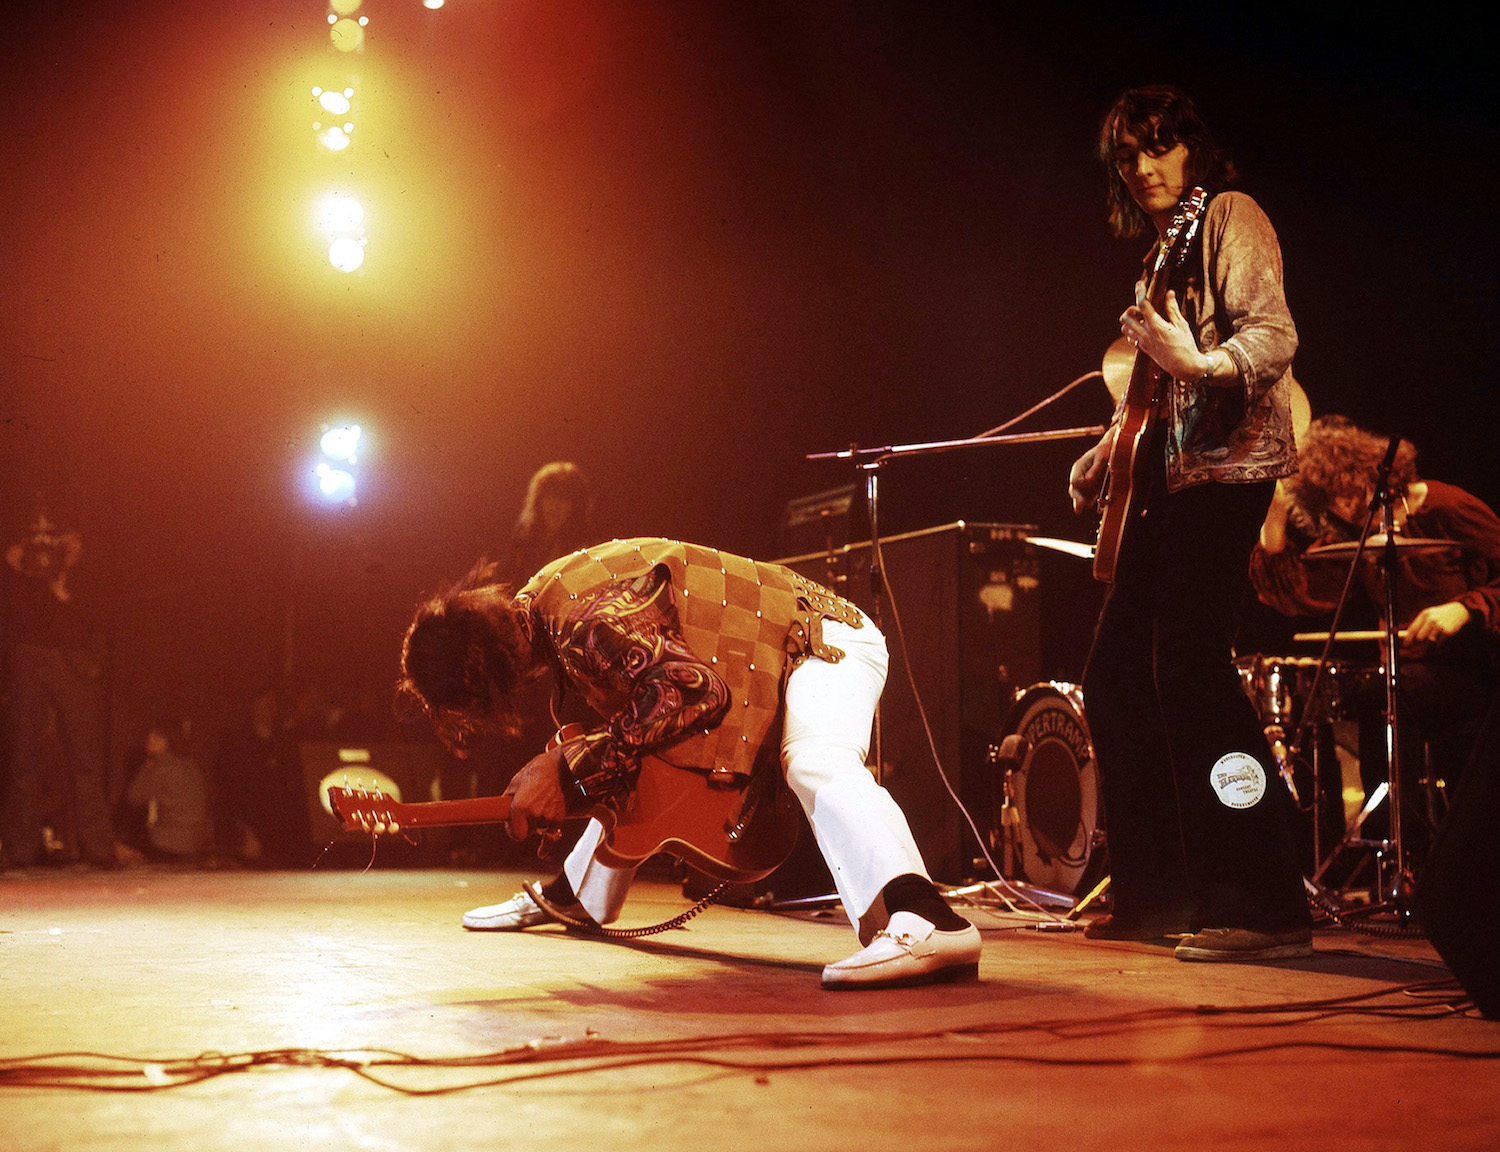 CHUCK BERRY IN CONCERT, LEWISHAM ODEON, LONDON, BRITAIN - 1973